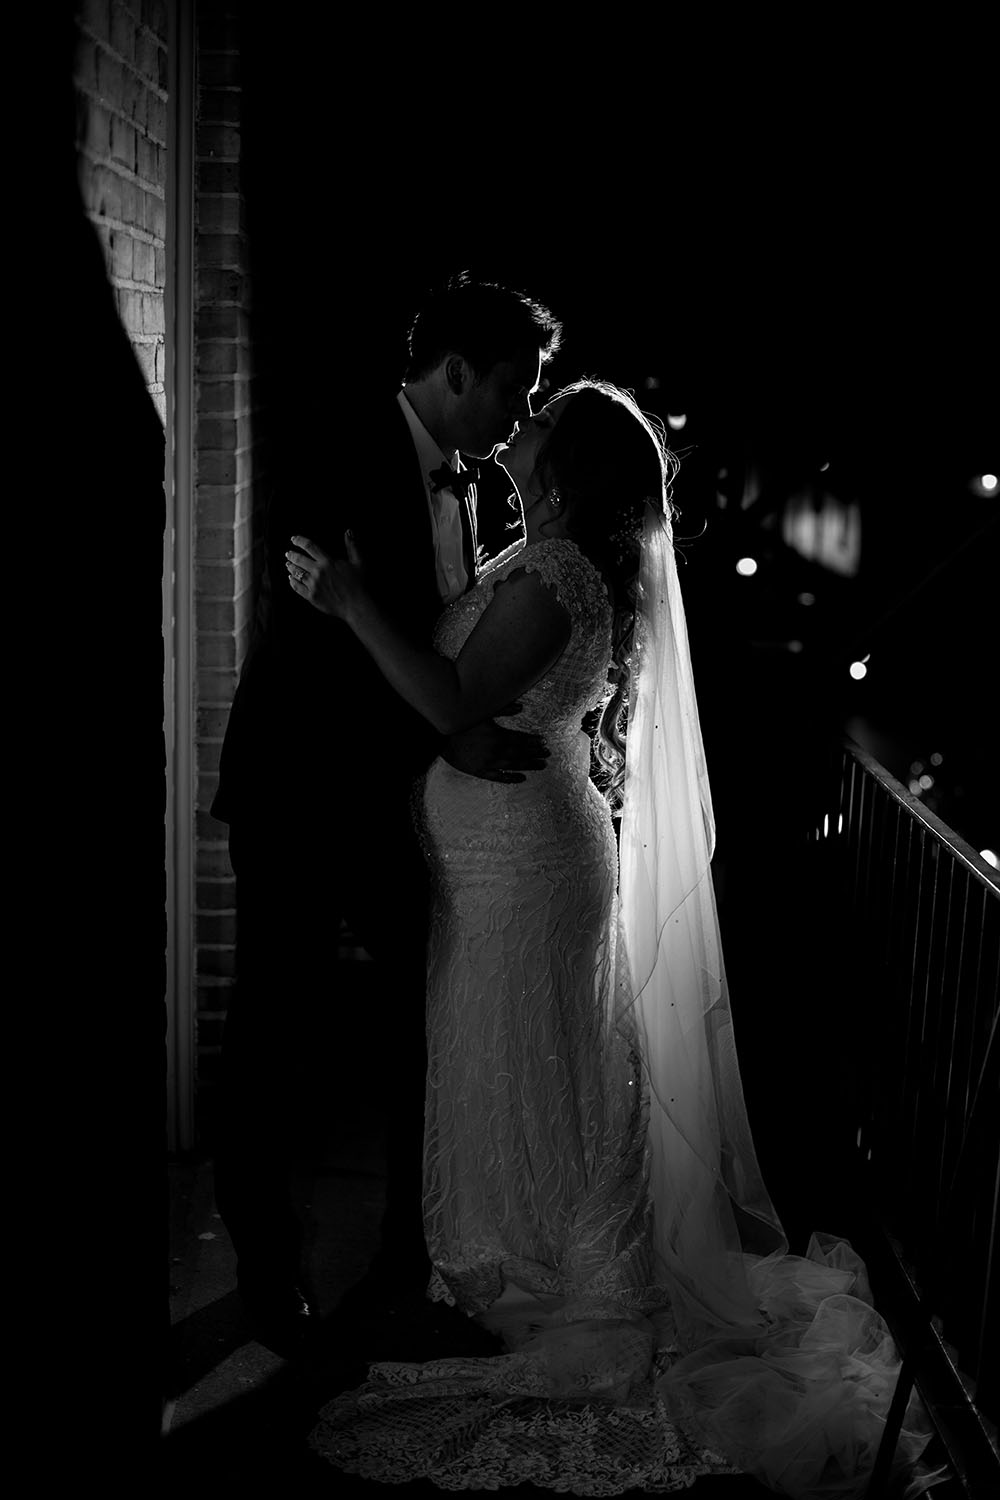 bride and groom embracing in a romantic black and white photo